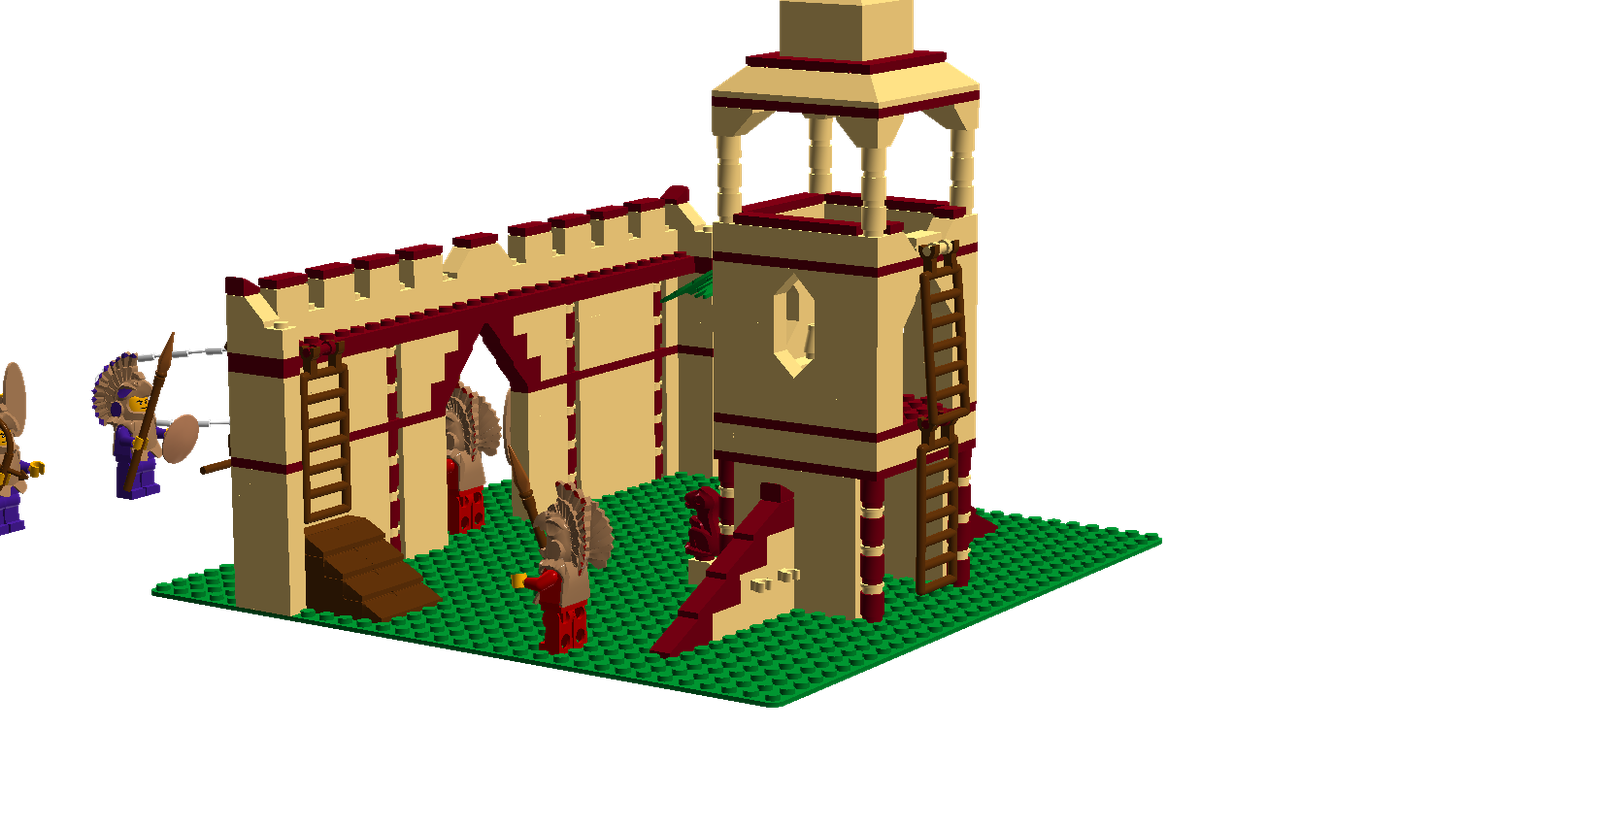 Lego house clipart picture library library LEGO Ideas - Product Ideas - Clash of civilisations: Toltec attack! picture library library